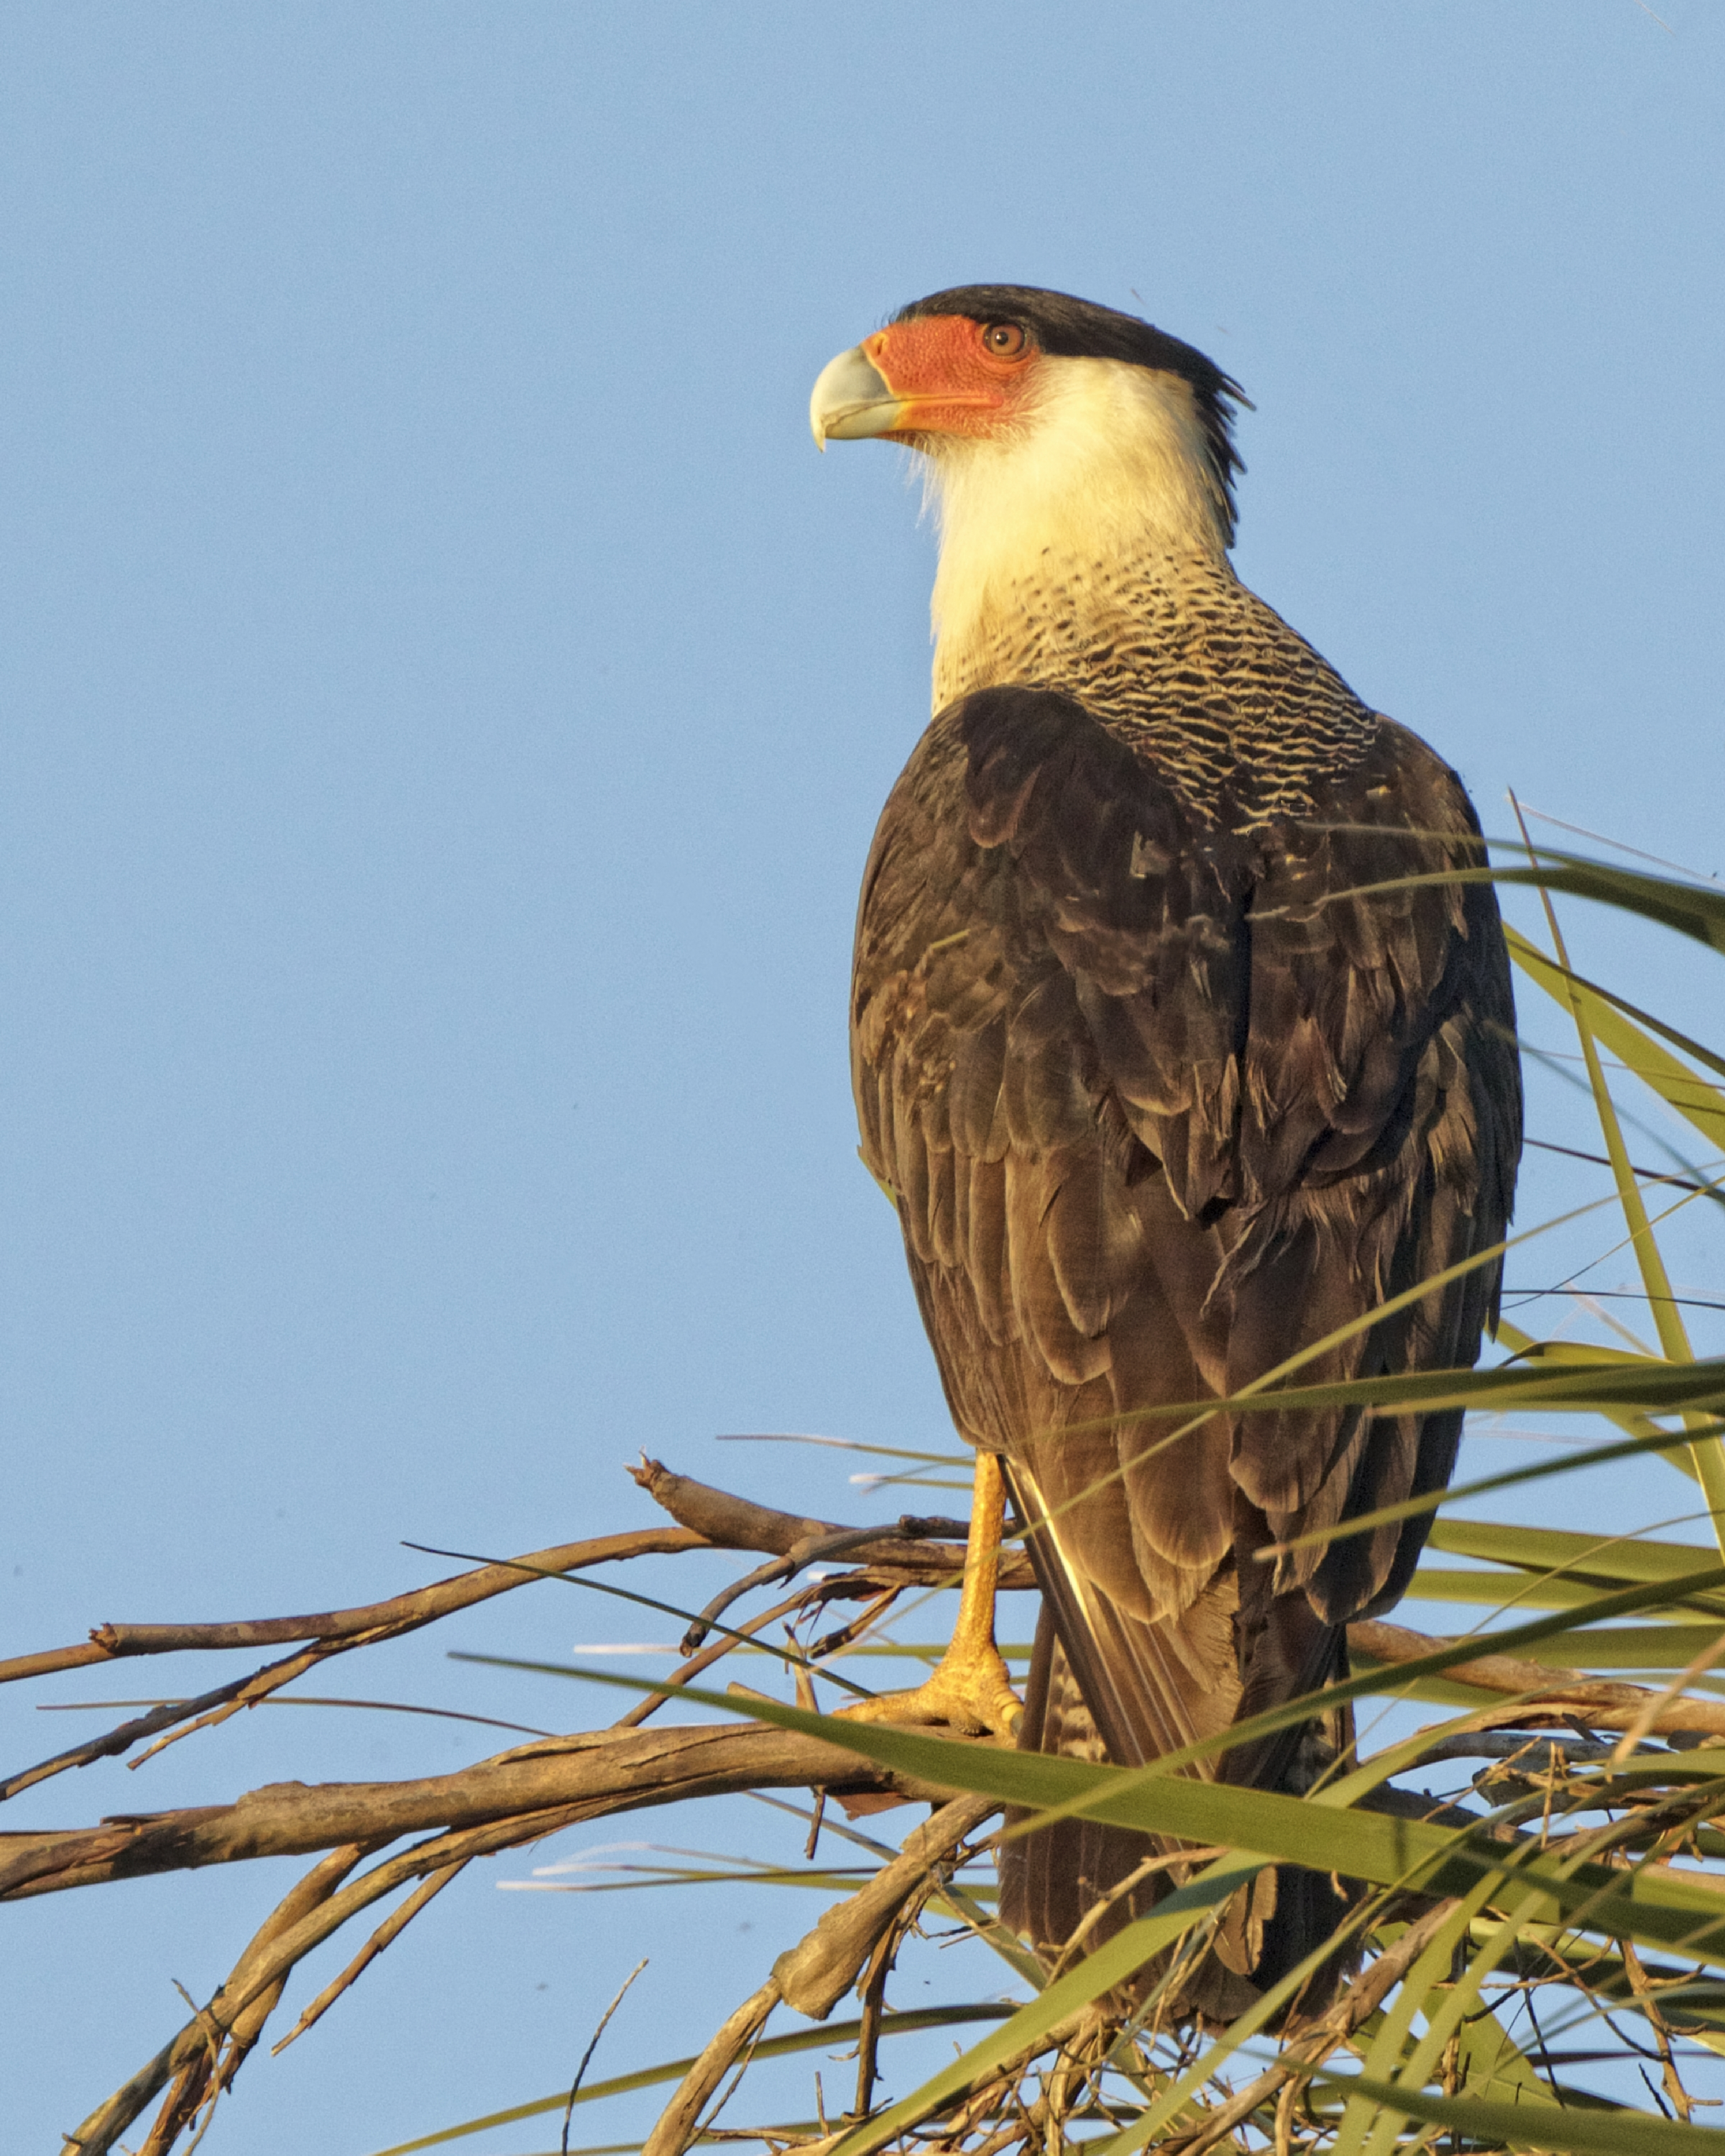 This Caracara is mainly a feeder of carrion or road kill